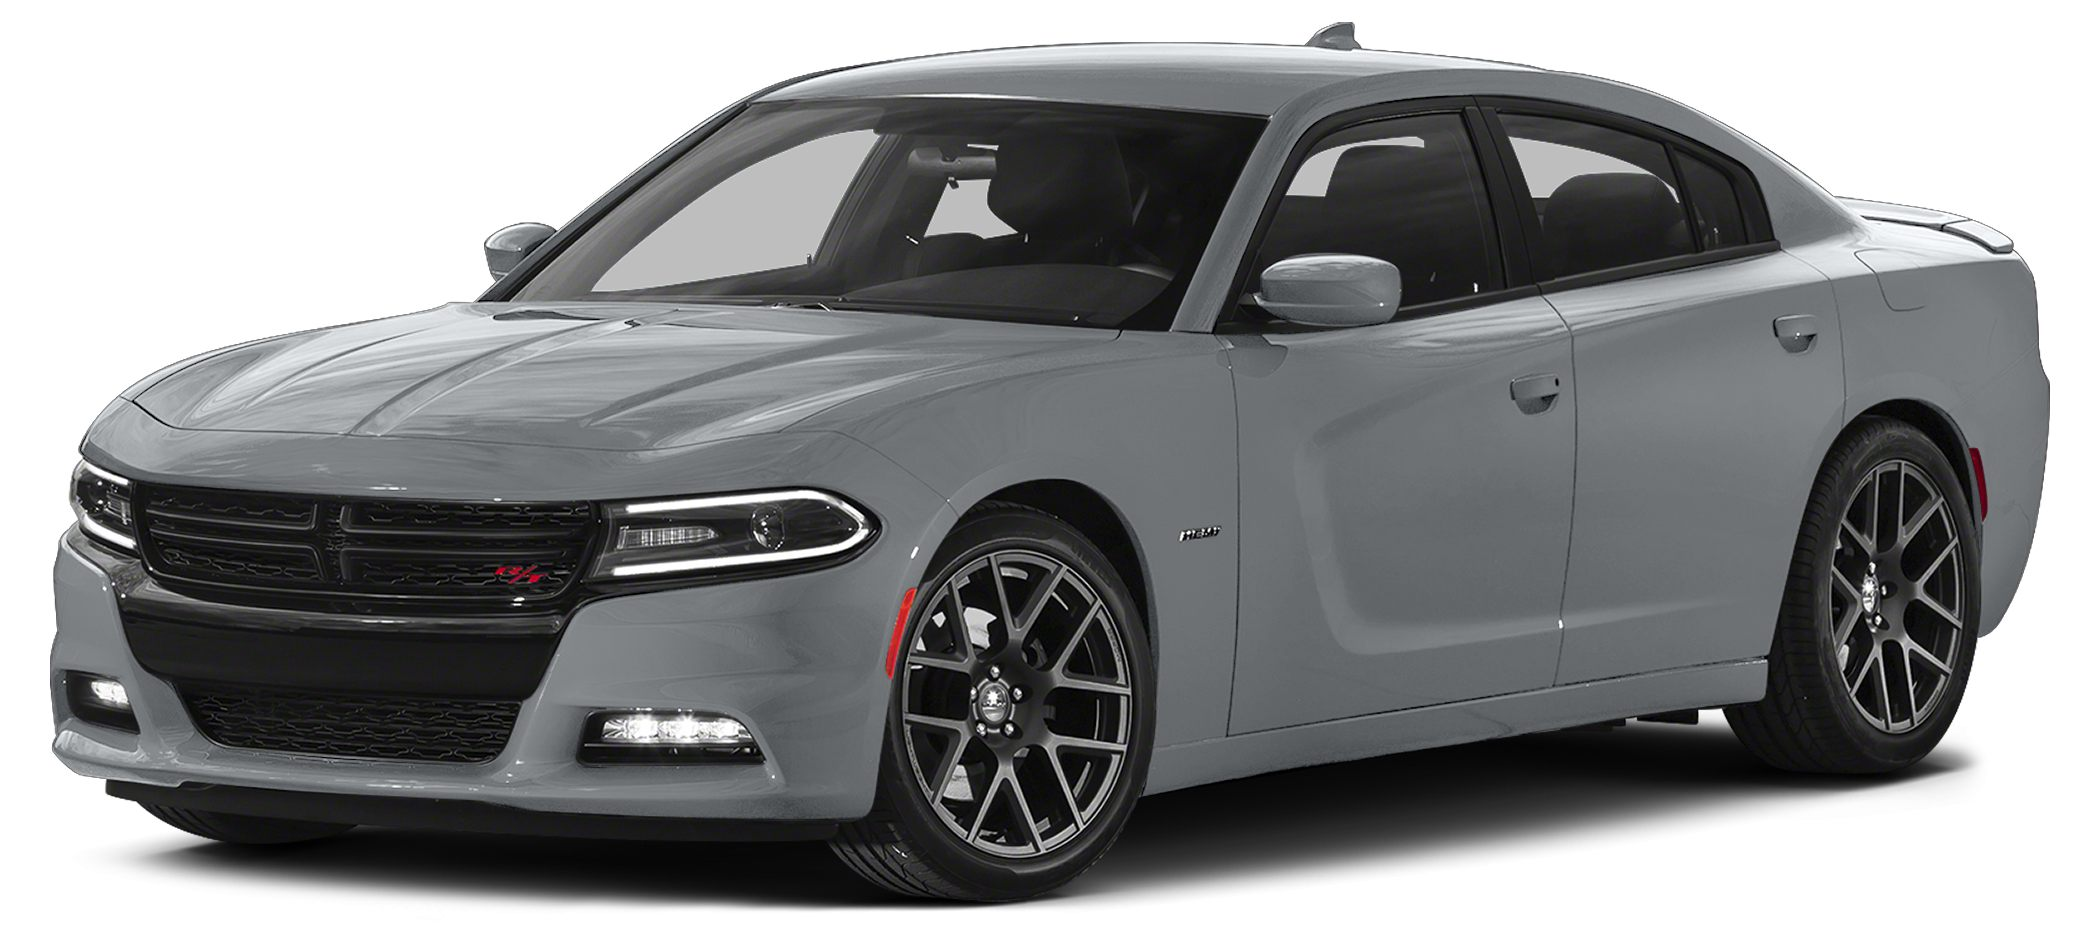 2015 Dodge Charger RT Scat Pack This 2015 Dodge Charger 4dr 4dr Sedan RT Scat Pack RWD features a